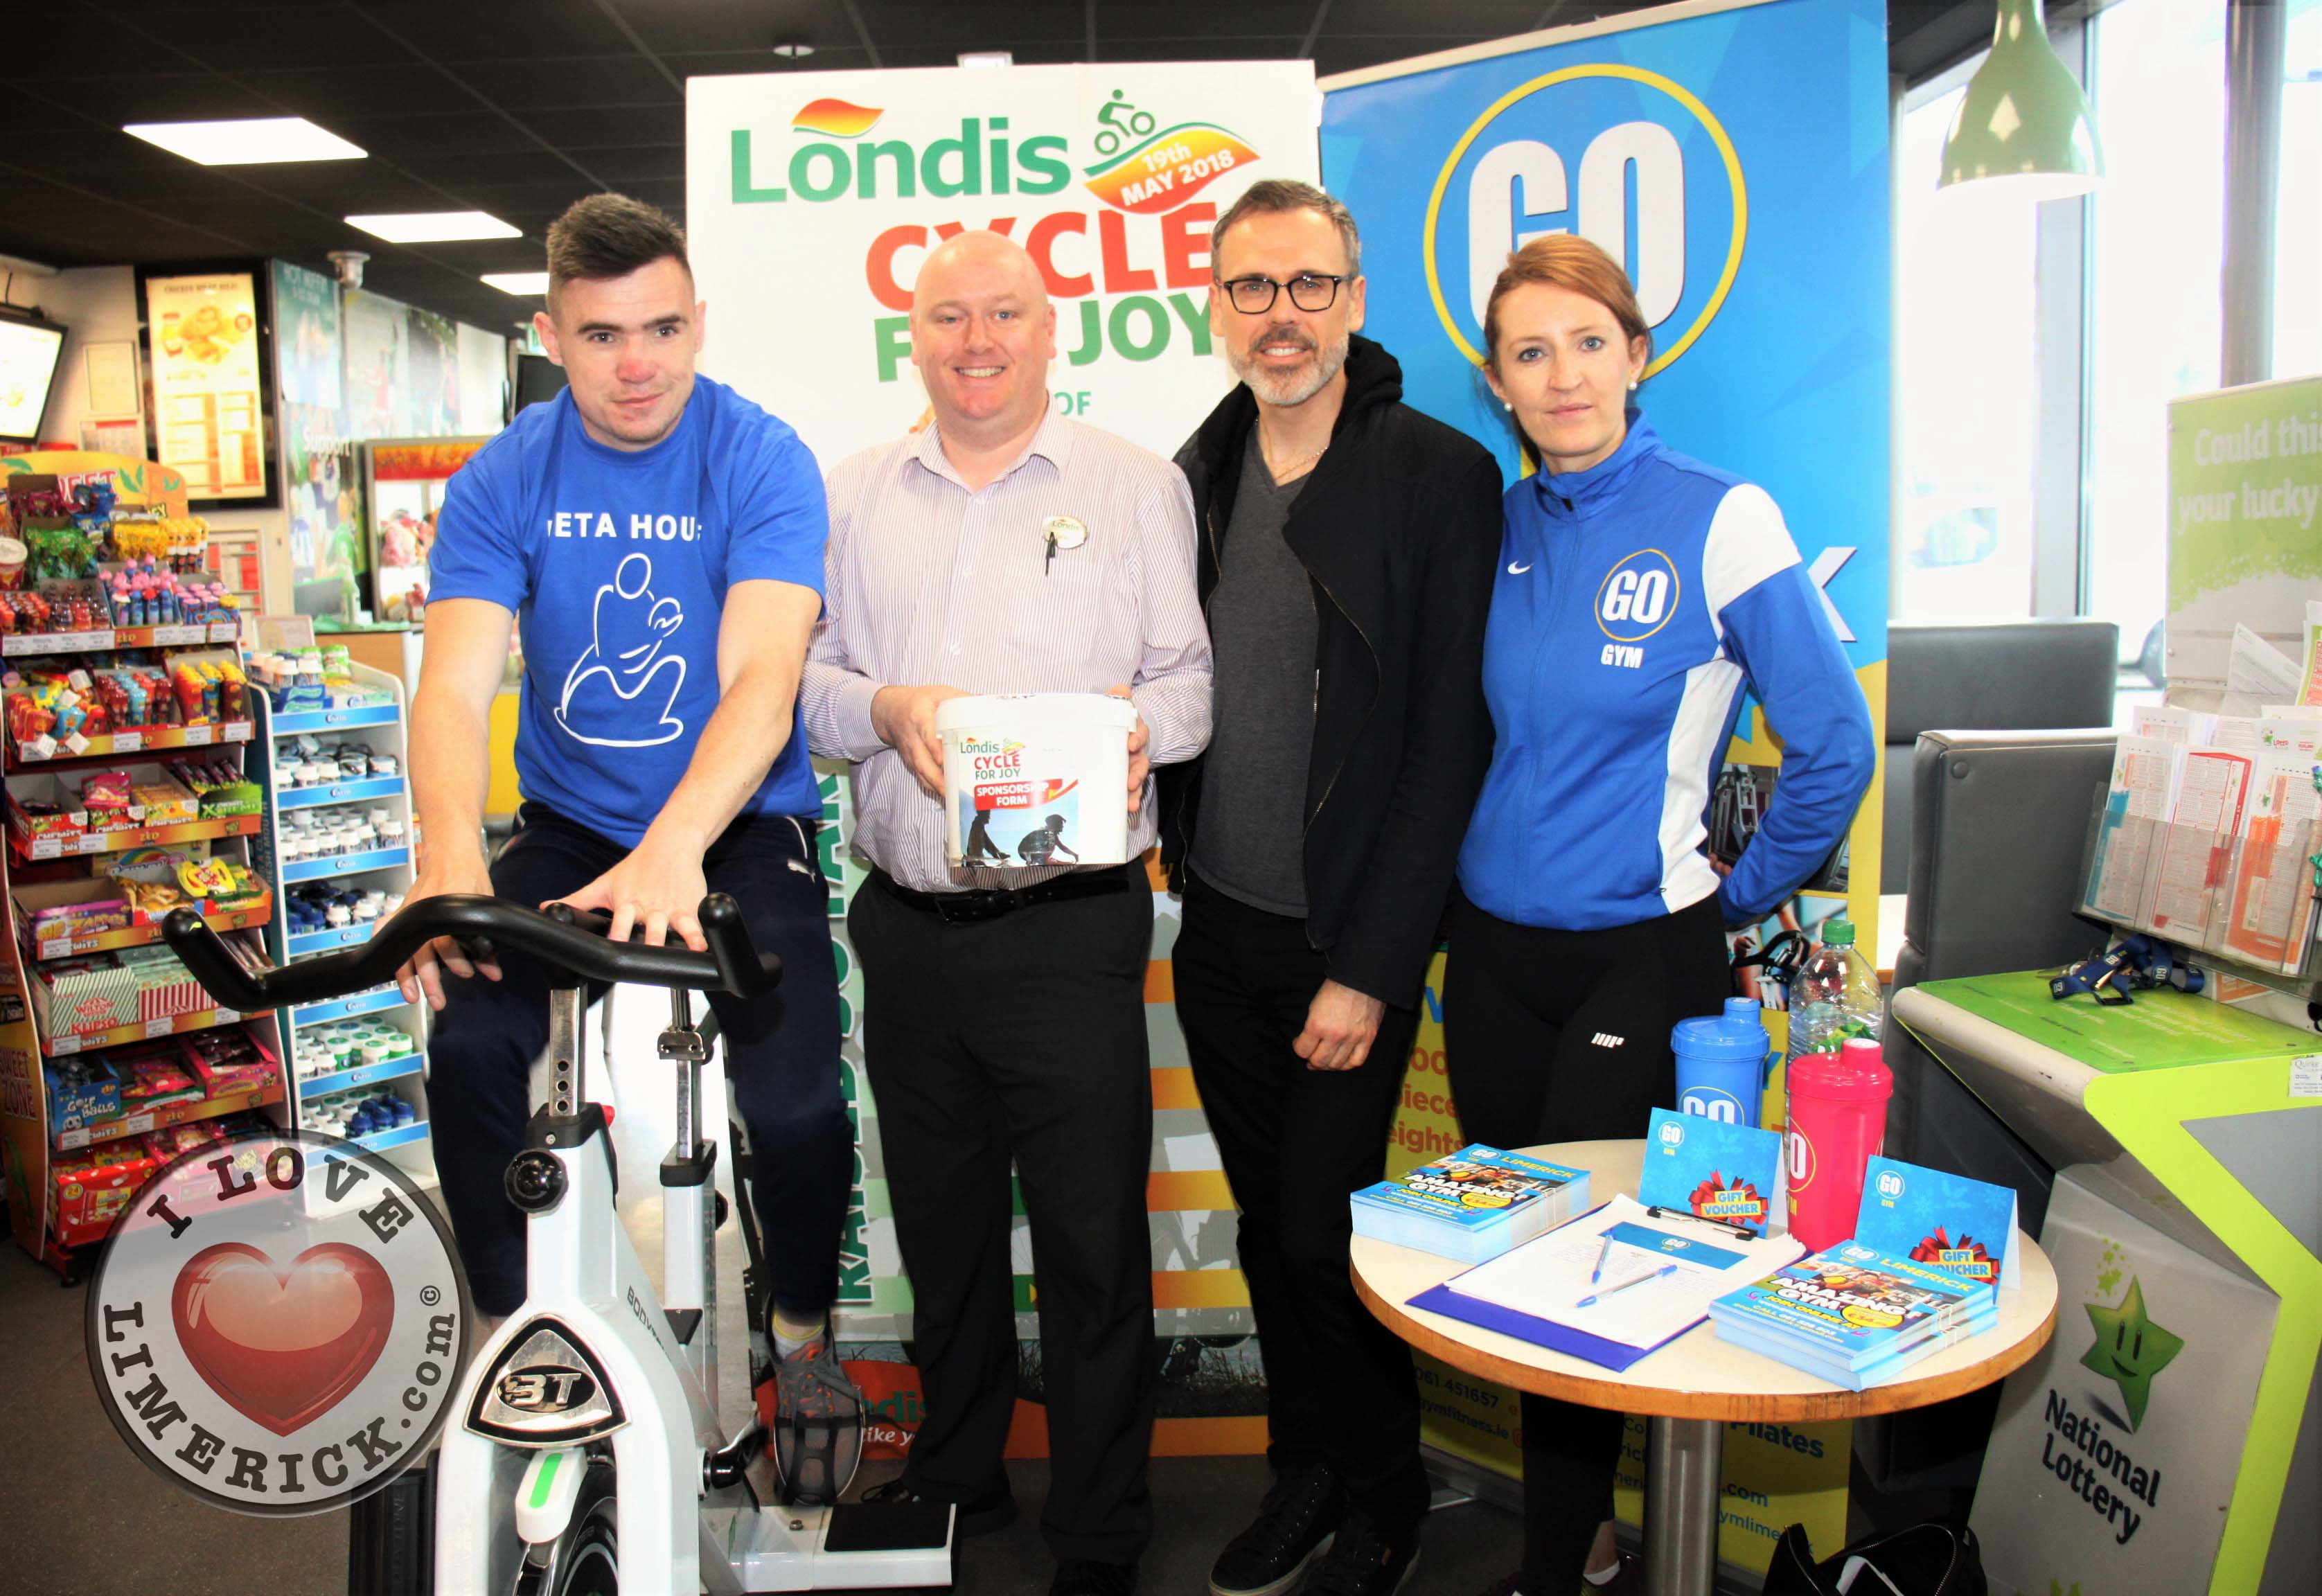 Cycle For Joy